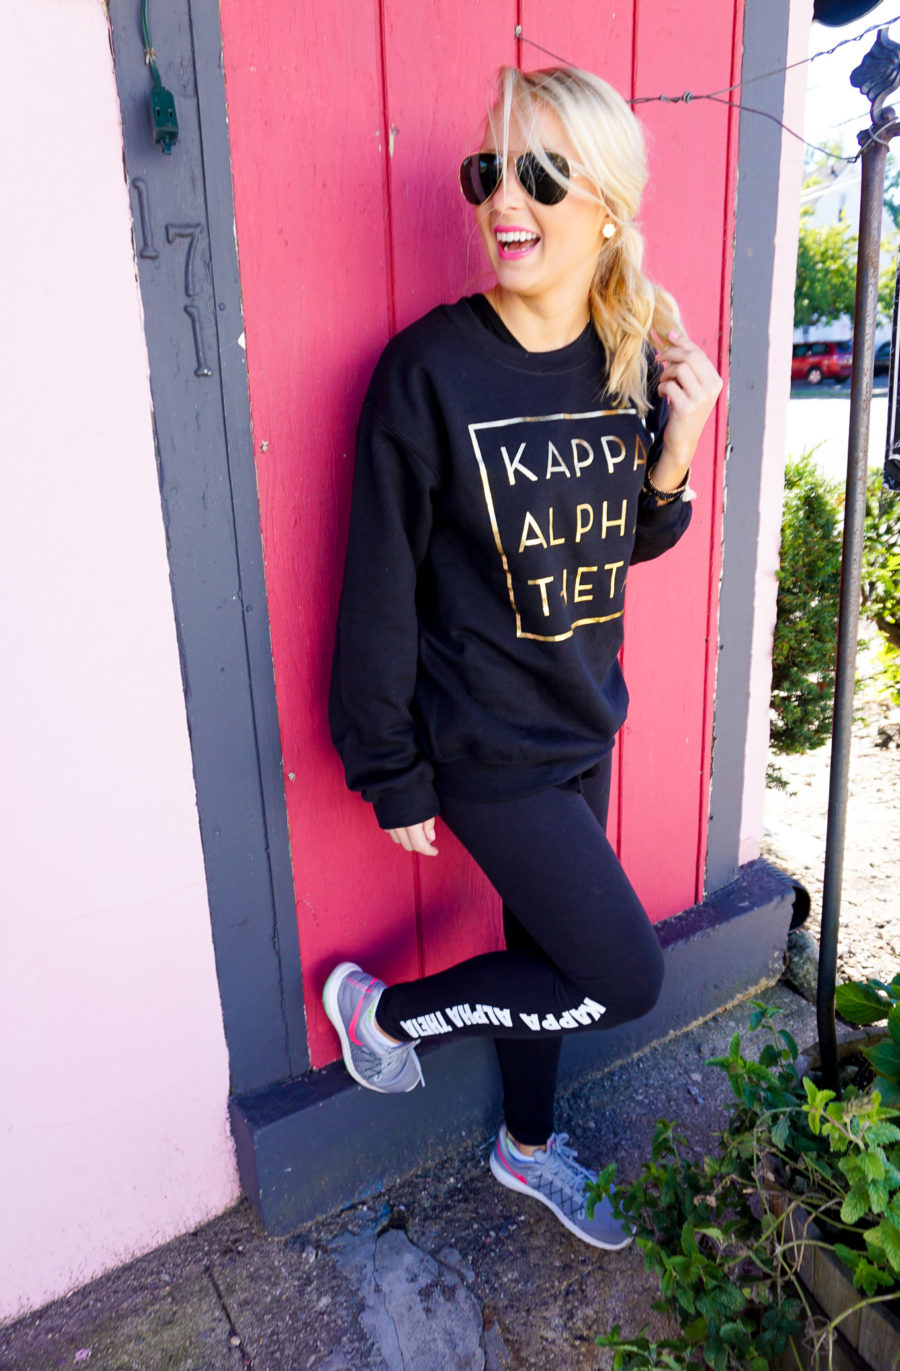 amy-littleson-from-i-believe-in-pink-wearing-kappa-alpha-theta-sorority-apparel-with-university-tees_-2